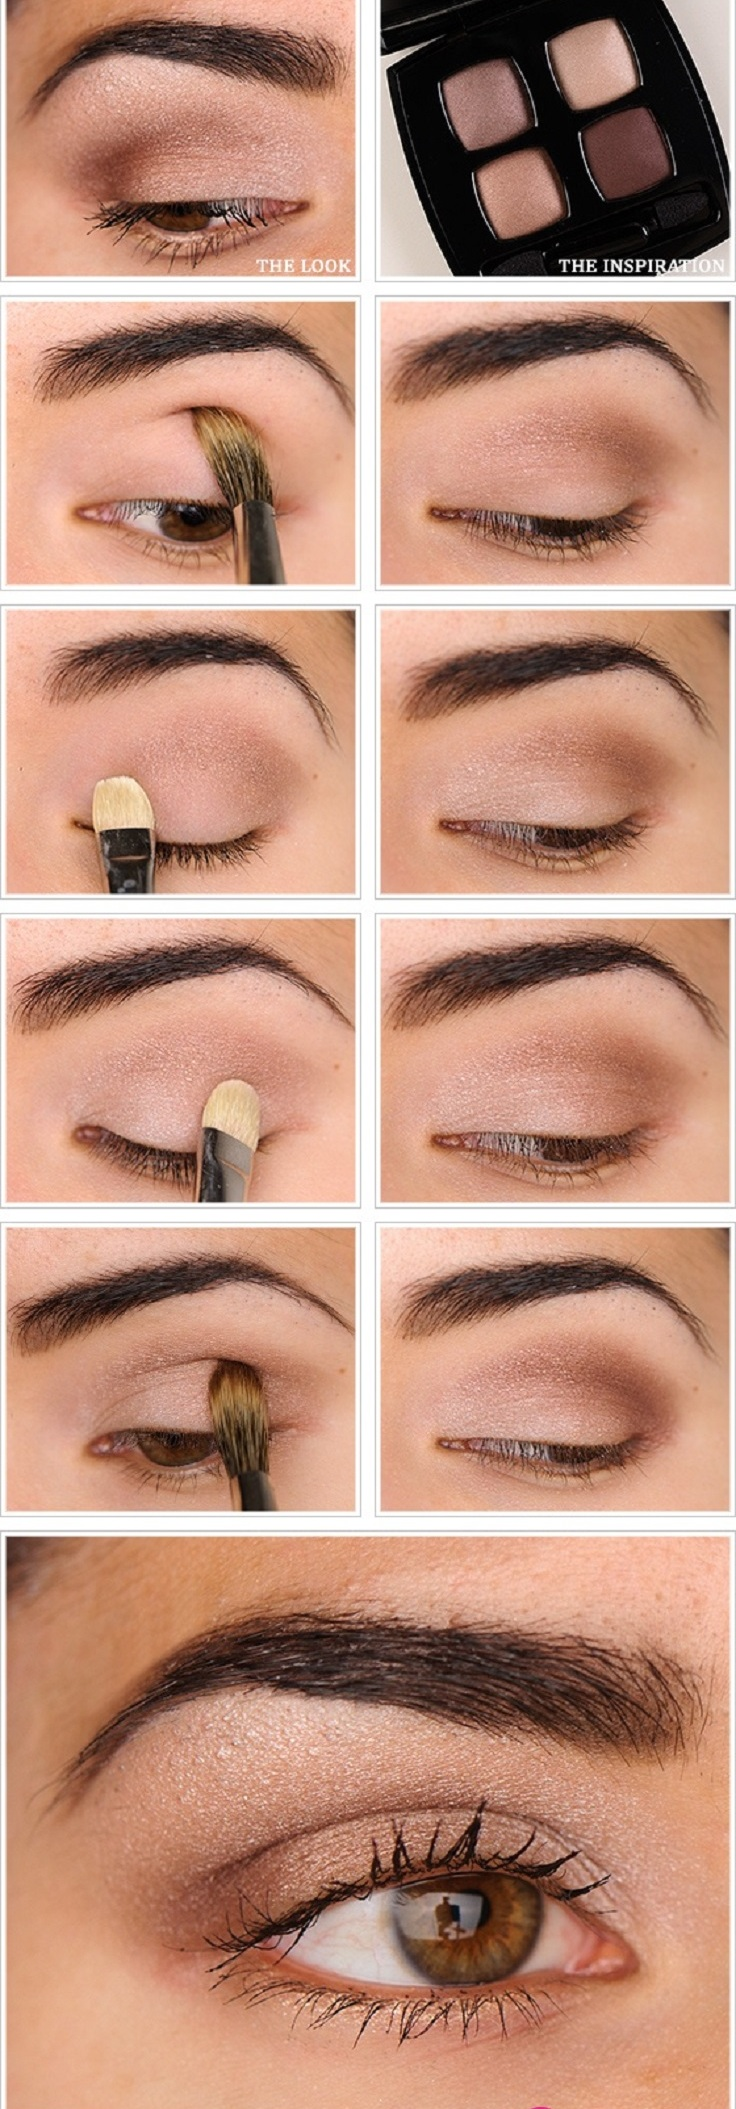 Top 9 Easy Natural Eye Makeup Tutorials - Top Inspired